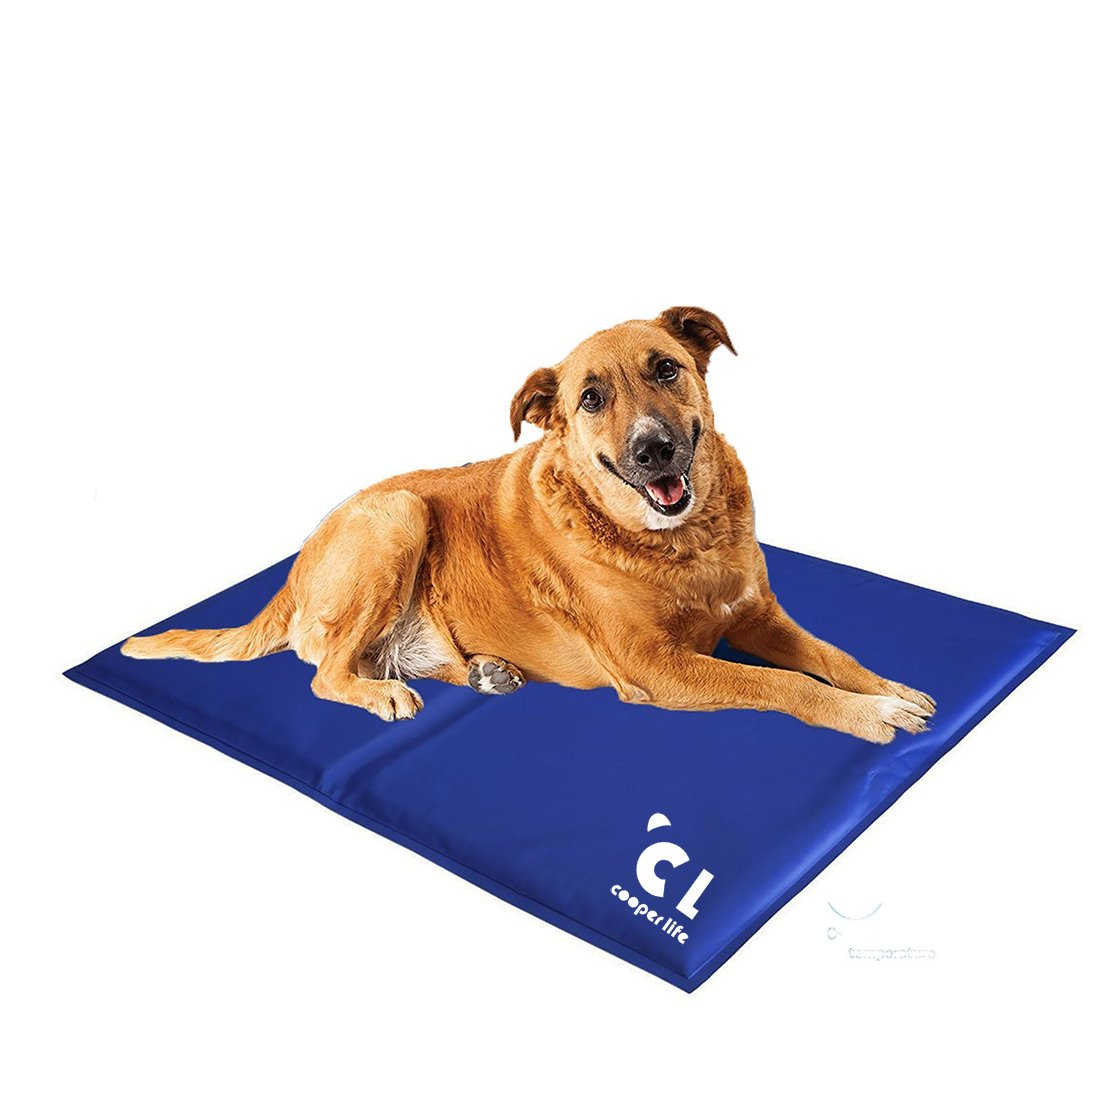 Cooper life Self Cooling Gel Pet Mat,Summer Sleep Cooling Mat/Pad with Easy to Clean,Non-Toxic——Prevent Overheating and Dehydration for Dogs,Cats&Pets. Perfect for Bed,Chair,Floor, Couch& Kennel (L) by Cooper life (Image #7)